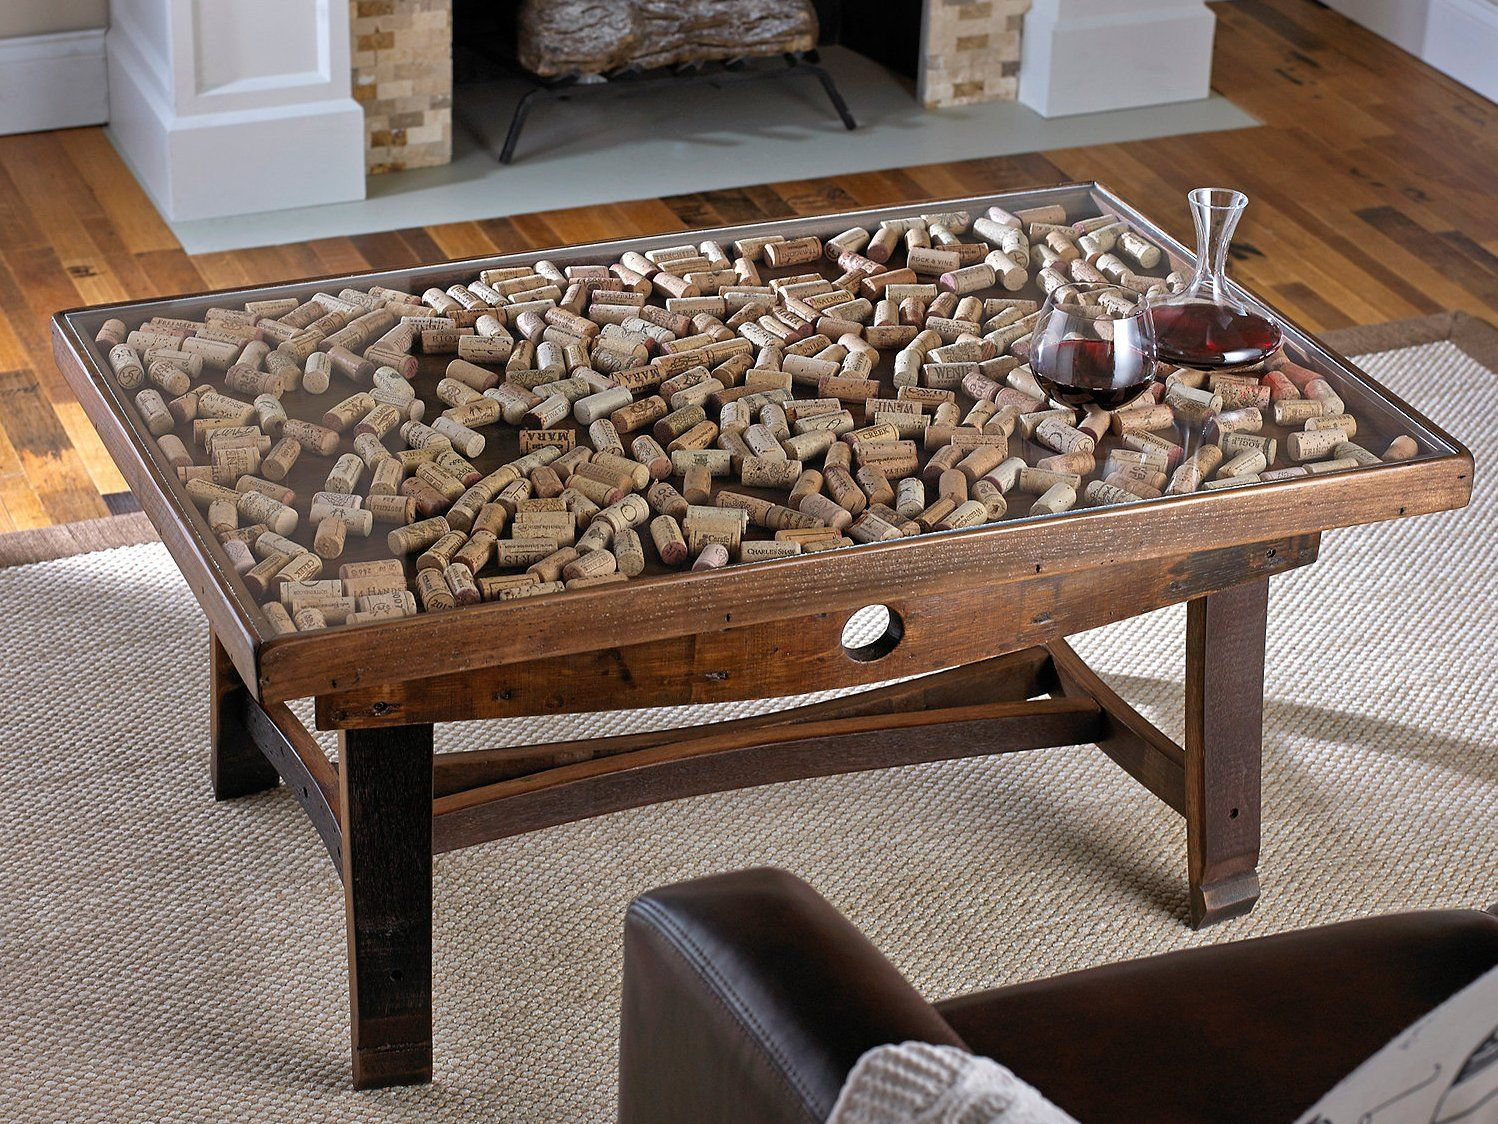 50 Pieces Of Old Furniture Updated Into Fresh Designer Looks In 2020 Display Coffee Table Coffee Table Furniture